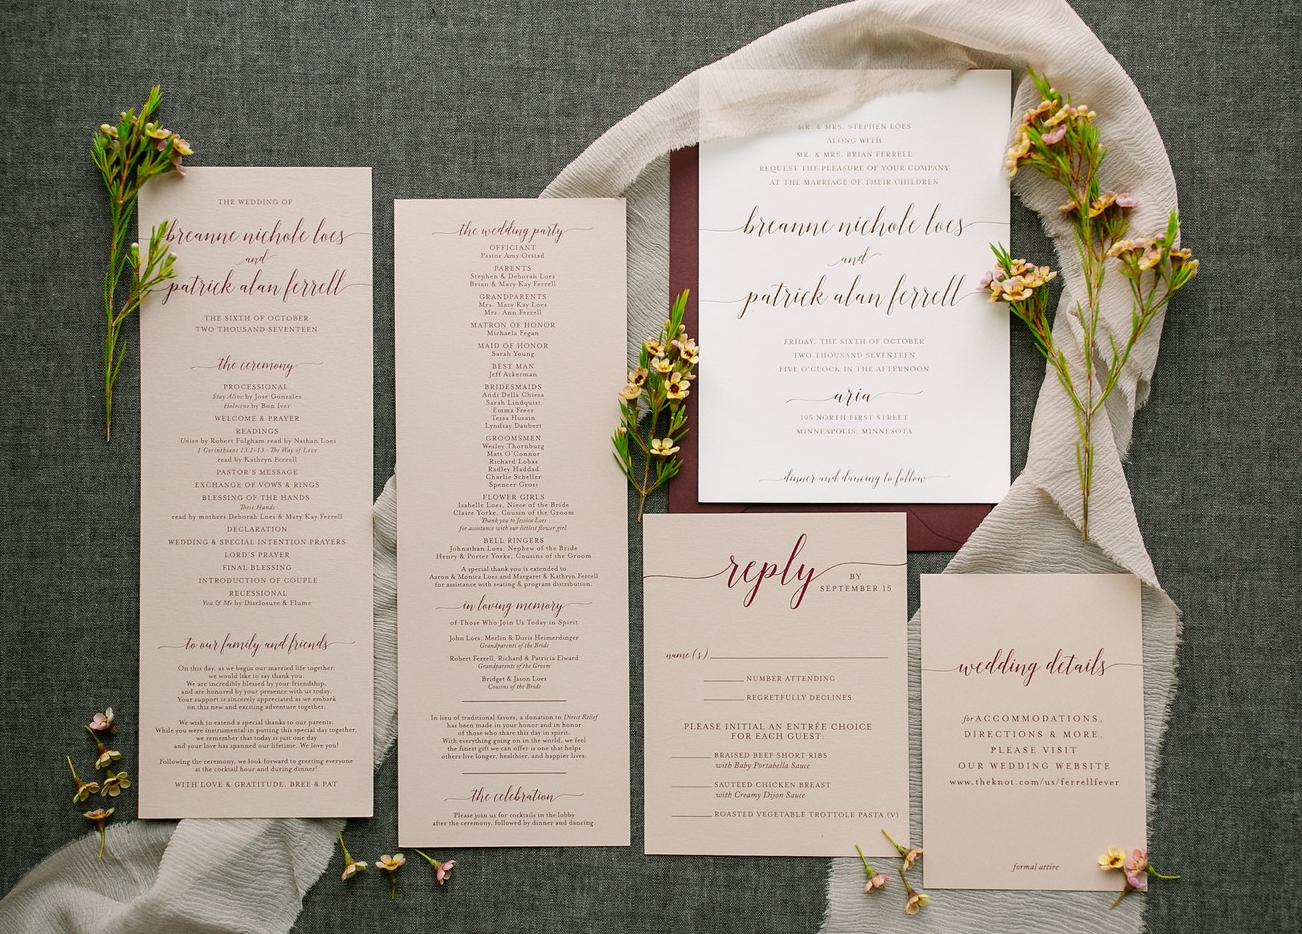 Burgundy and Ivory Invitations with a Twist! The edges of these beautiful invitations were also dyed burgundy. A little touch that is only visible from the sides but makes a big impact